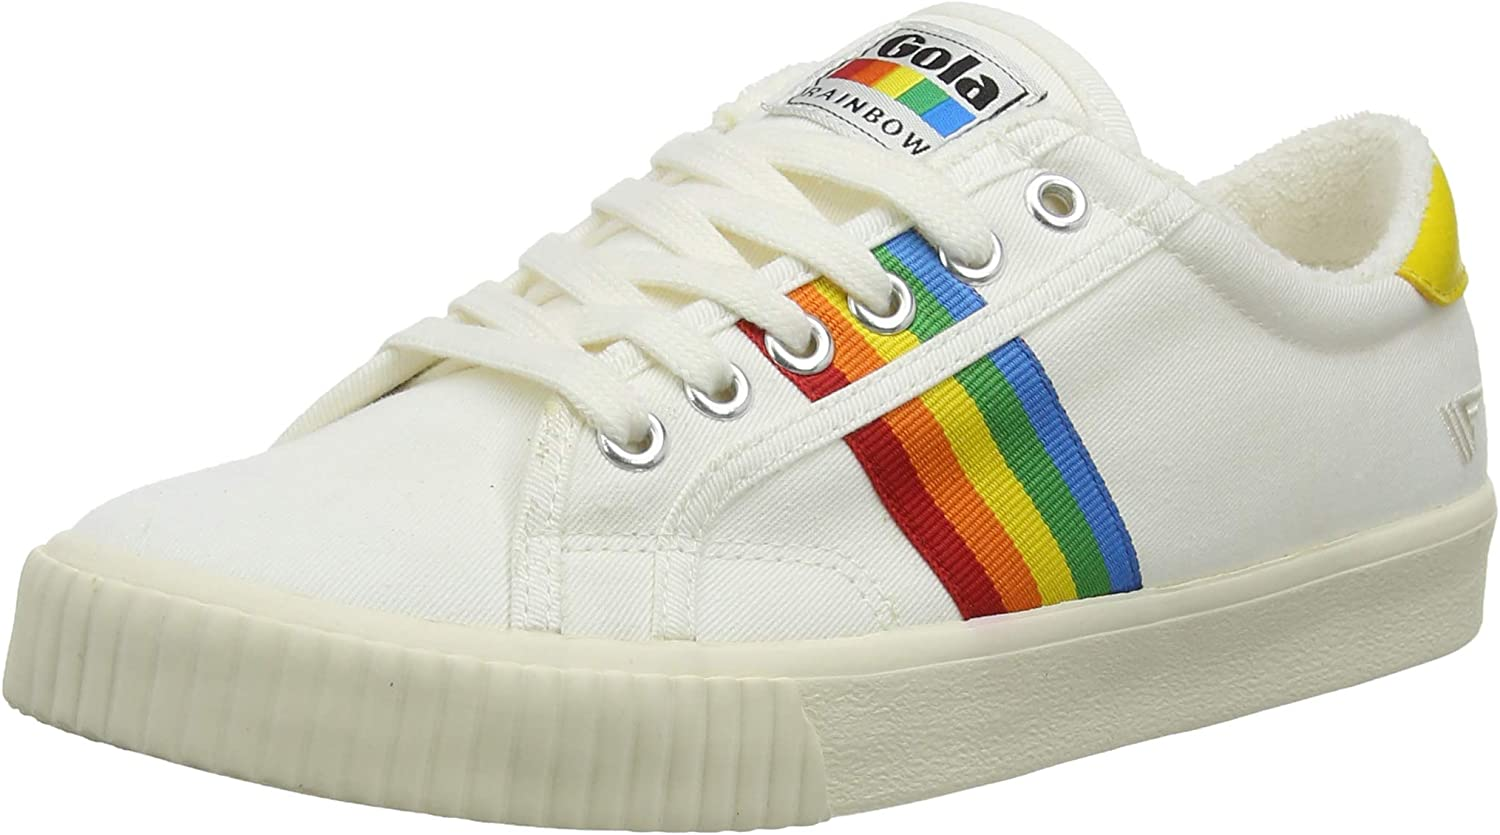 At the price of surprise excellence Gola Women's Sneaker